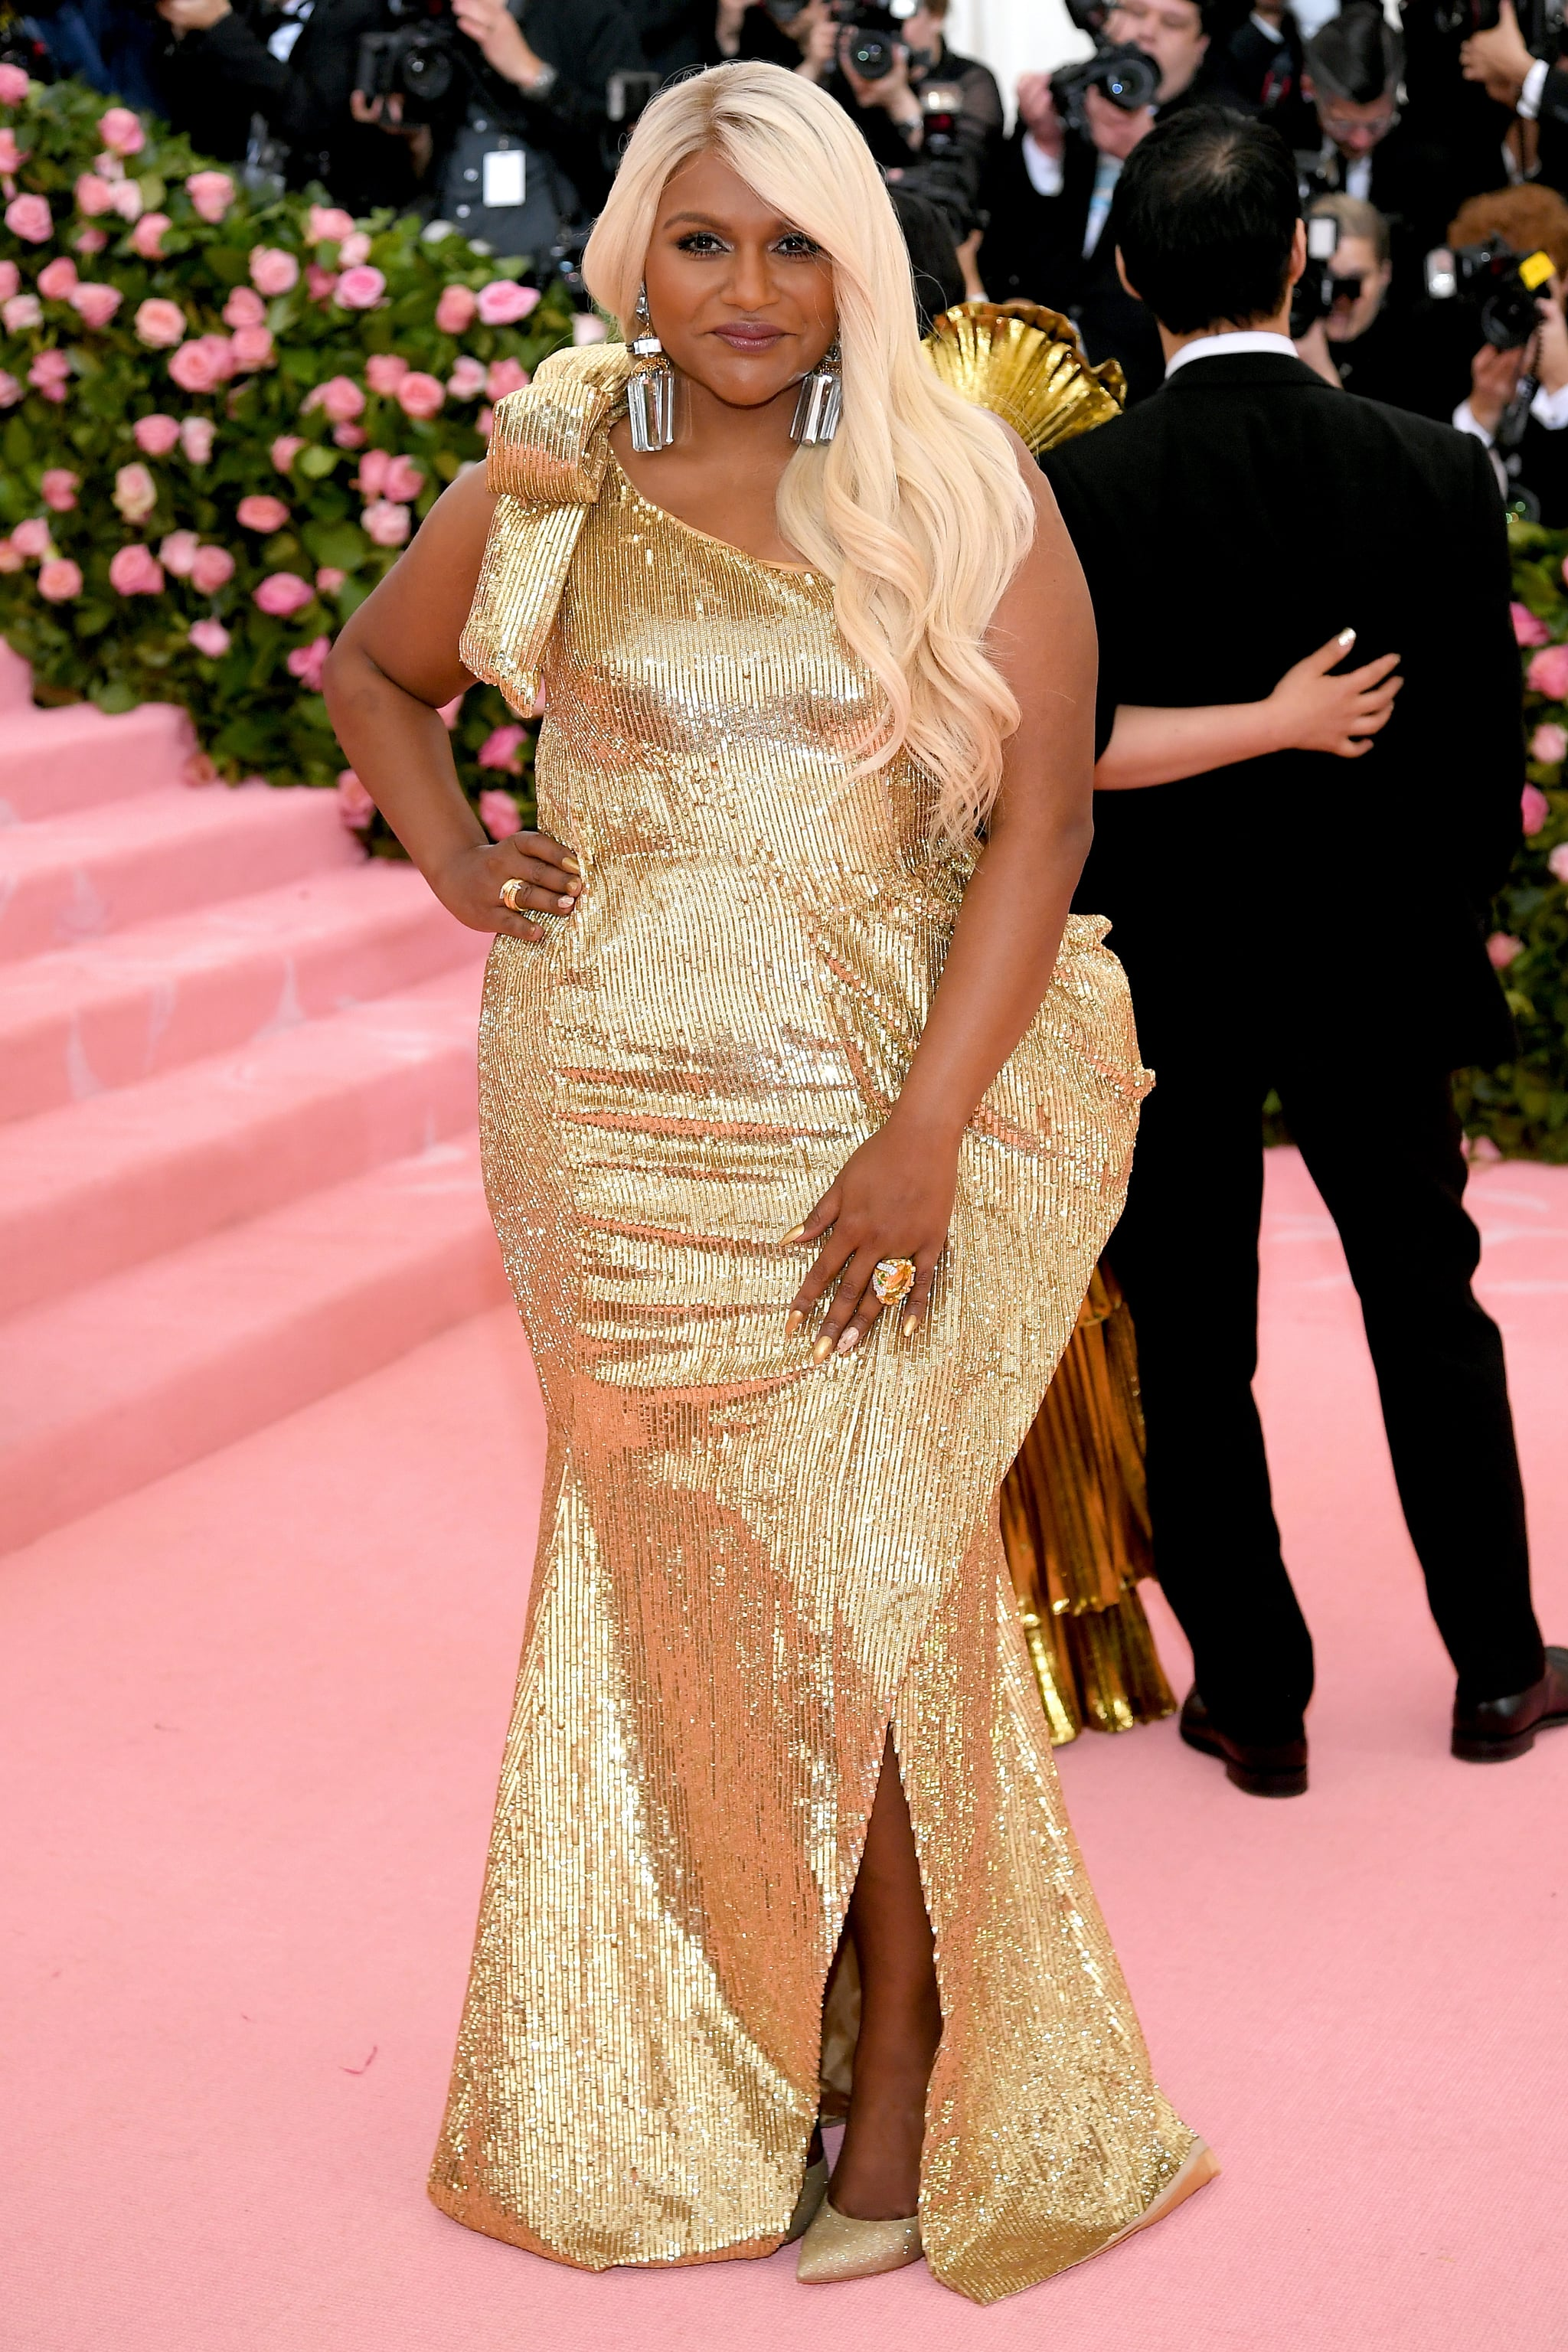 Mindy Kaling At The 2019 Met Gala These Met Gala Looks Are Dramatic Enough To Entertain You For The Rest Of The Year Popsugar Fashion Photo 240